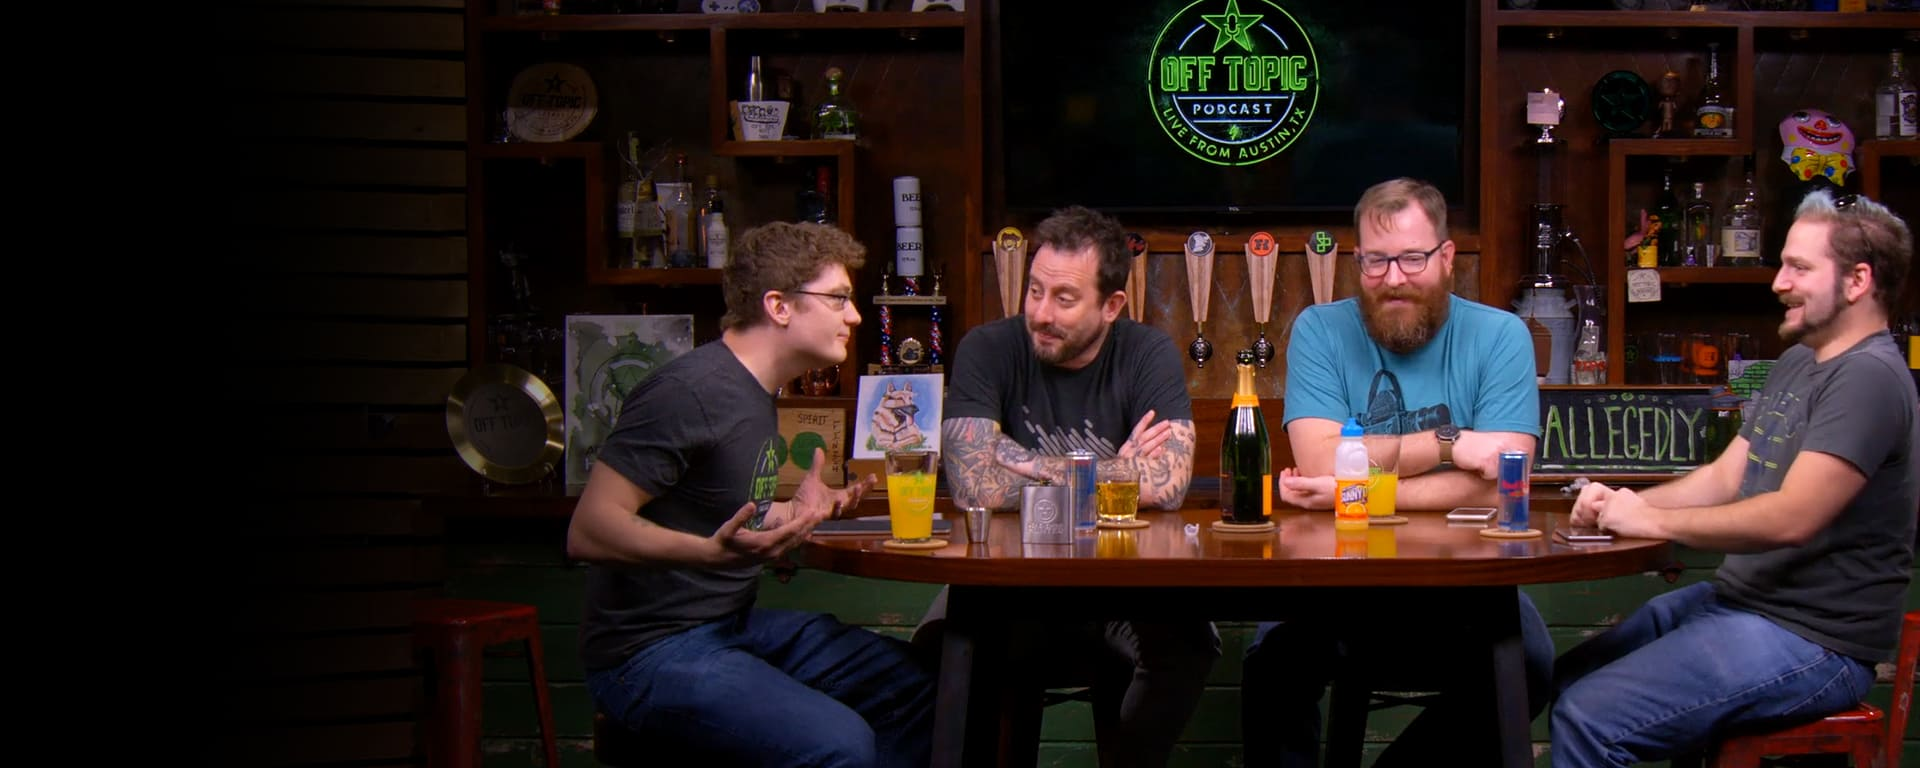 Series Off Topic - Rooster Teeth